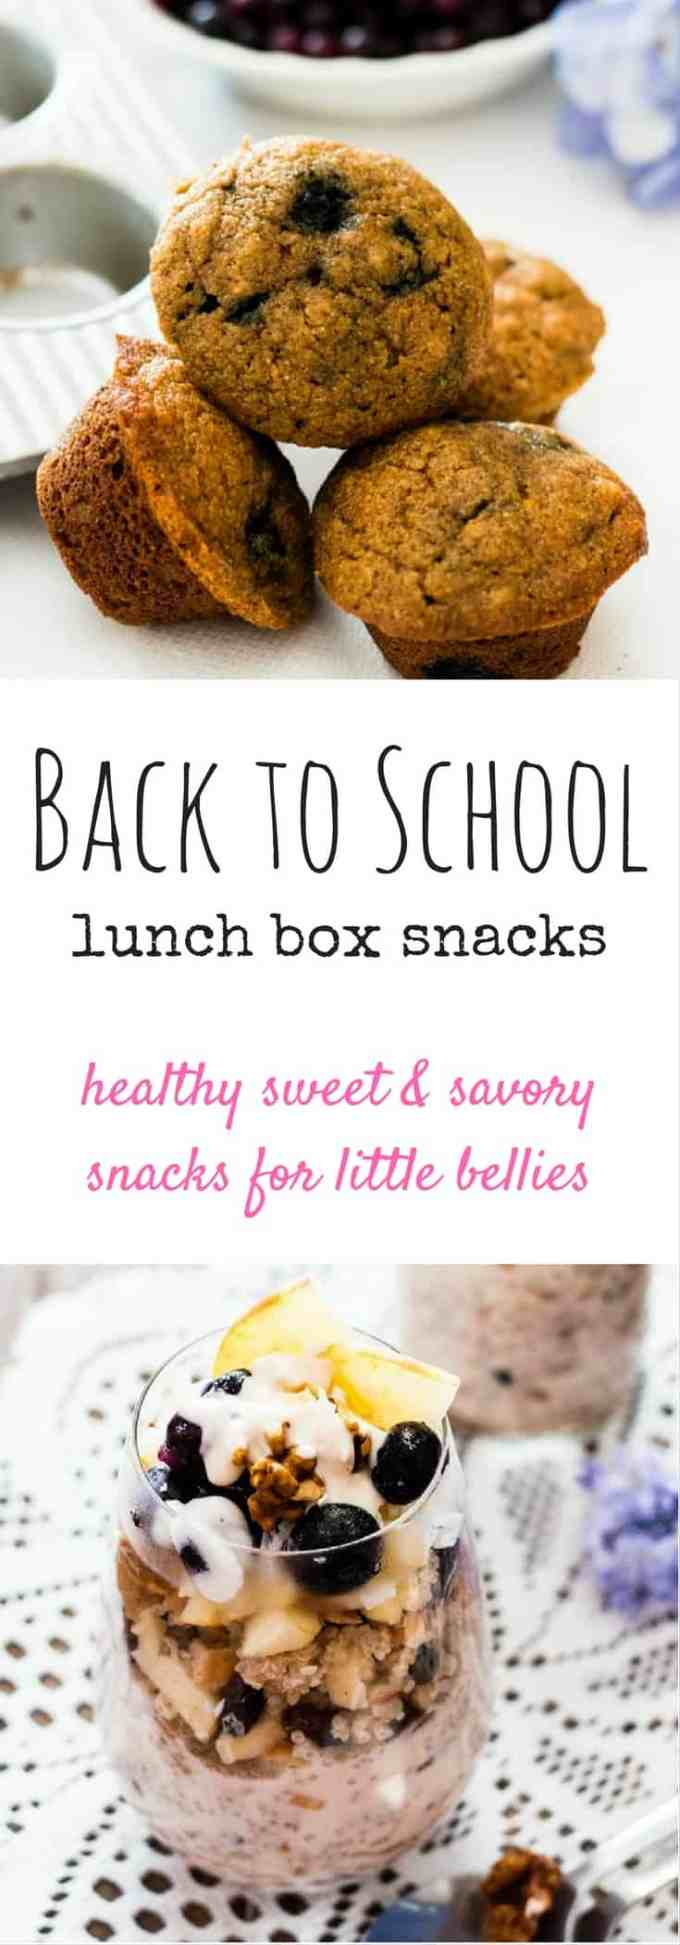 Back to School Snacks. From scratch snacks to satisfy little bellies after a busy day at school